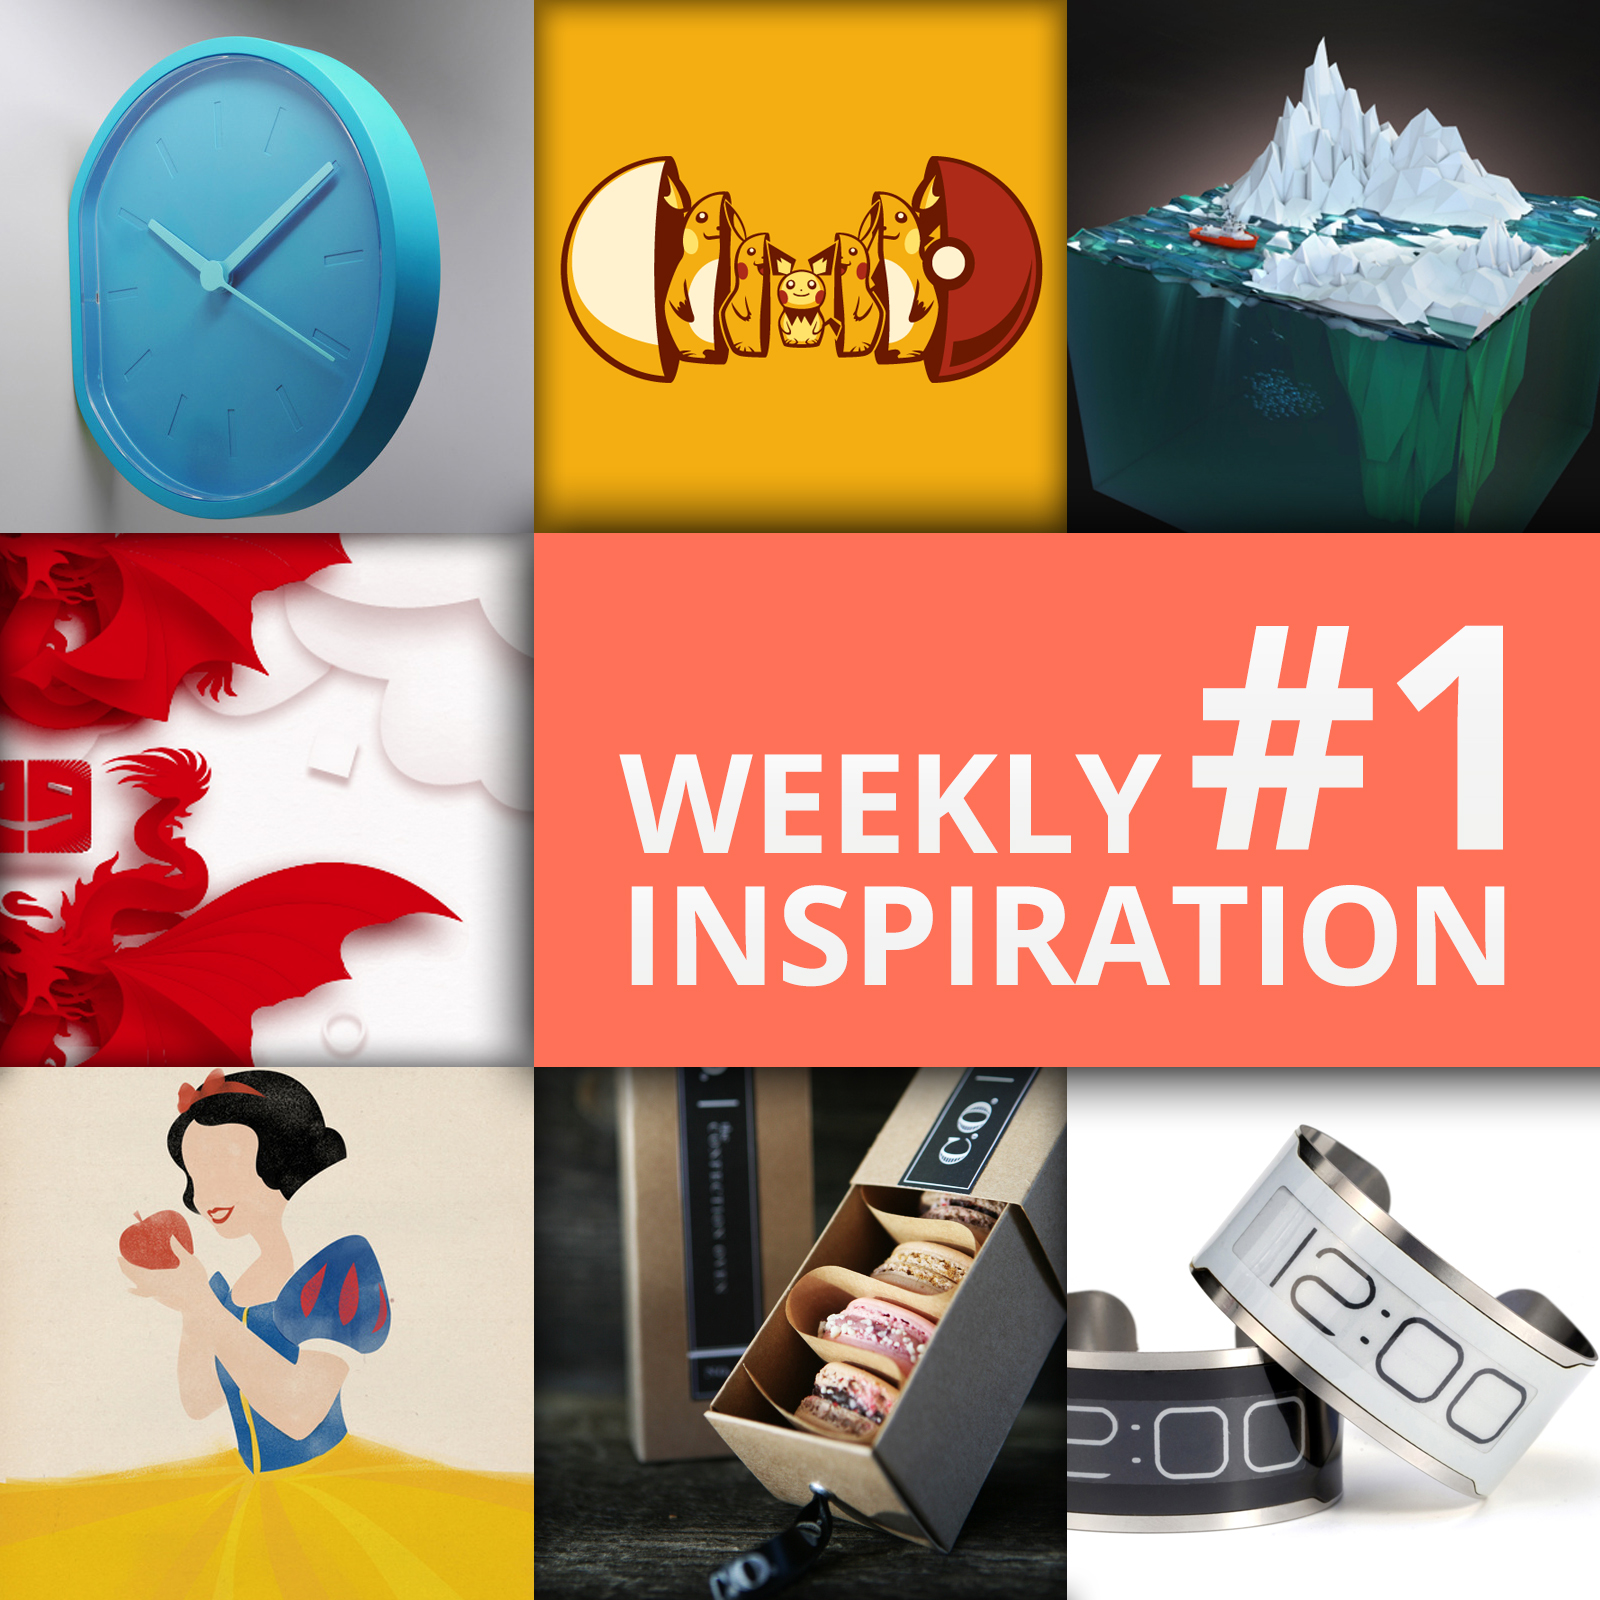 Weekly Inspiration #1